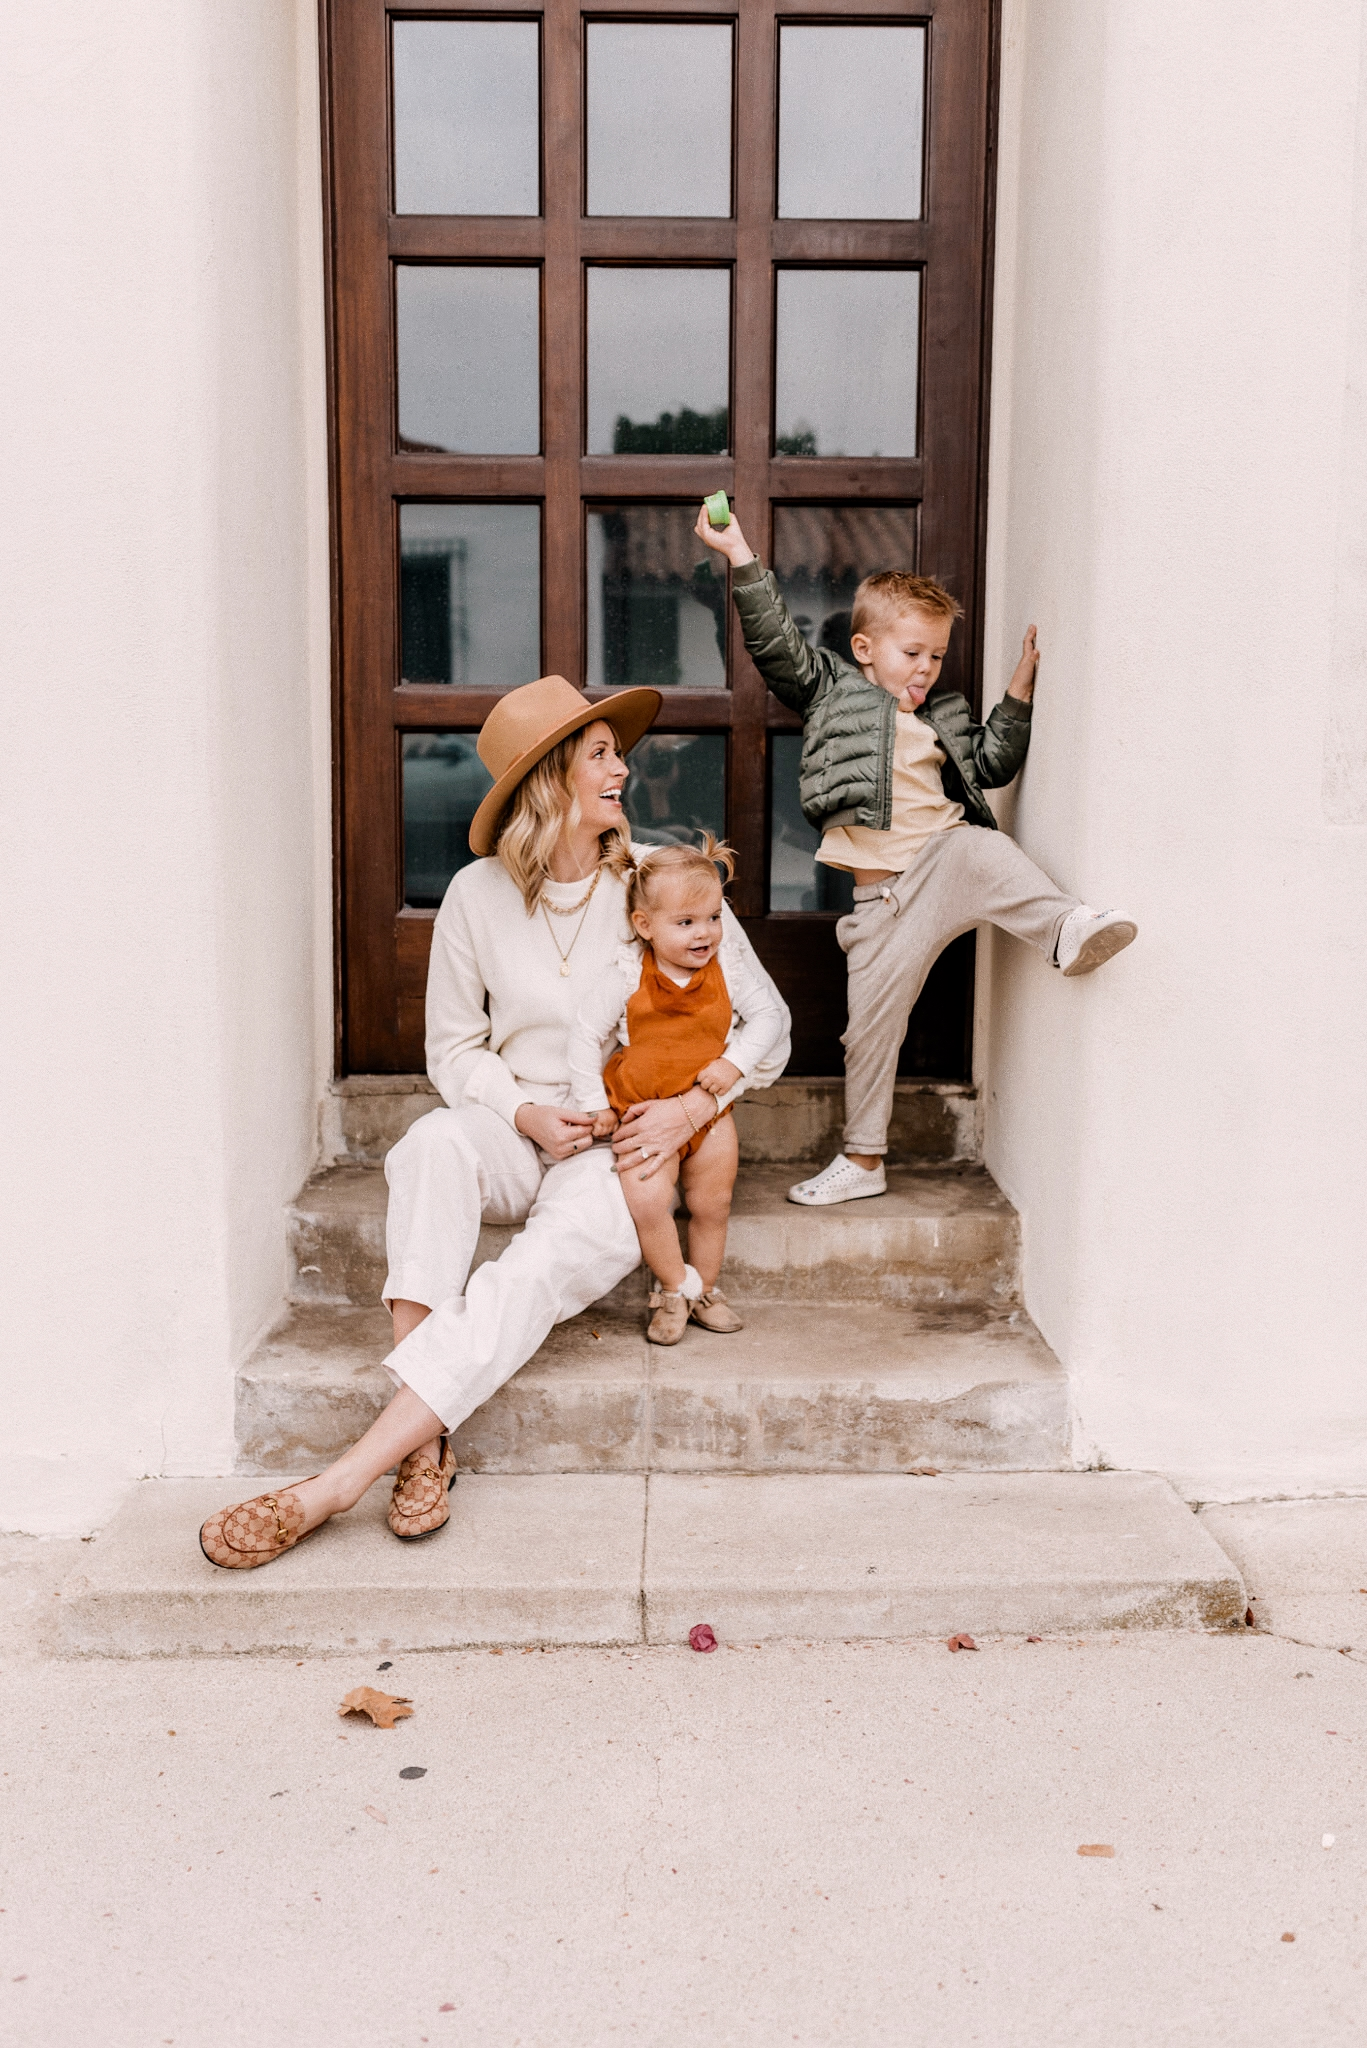 Affordable kids clothing |Kids Winter Clothes by popular San Diego motherhood blog, Navy Grace: image of a mom and her two young kids sitting together on some cement steps.